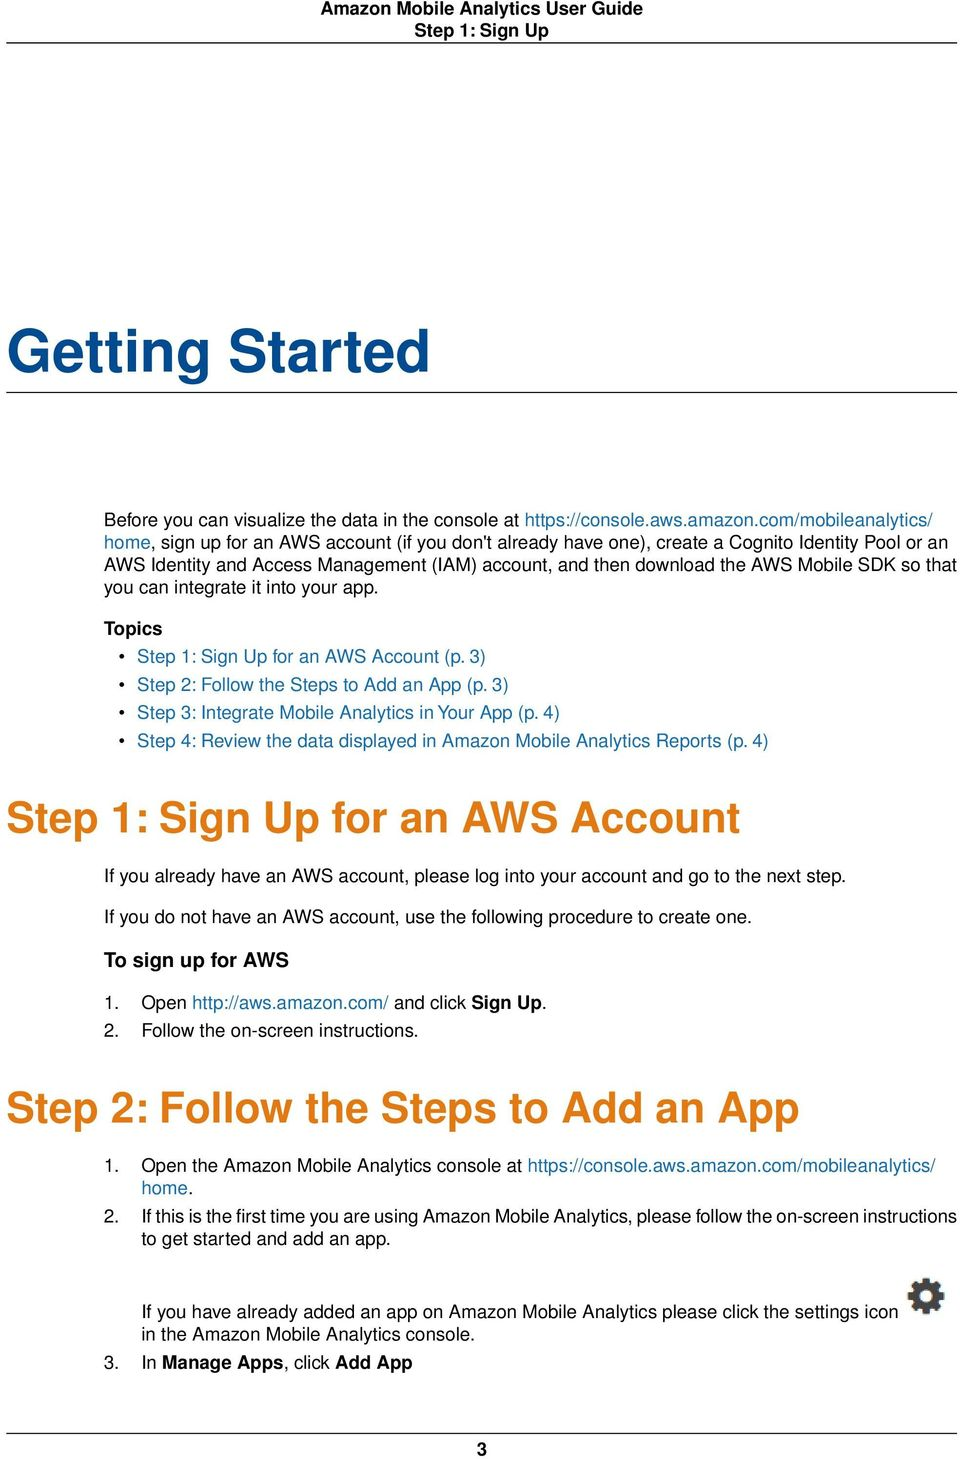 Mobile SDK so that you can integrate it into your app. Topics Step 1: Sign Up for an AWS Account (p. 3) Step 2: Follow the Steps to Add an App (p. 3) Step 3: Integrate Mobile Analytics in Your App (p.